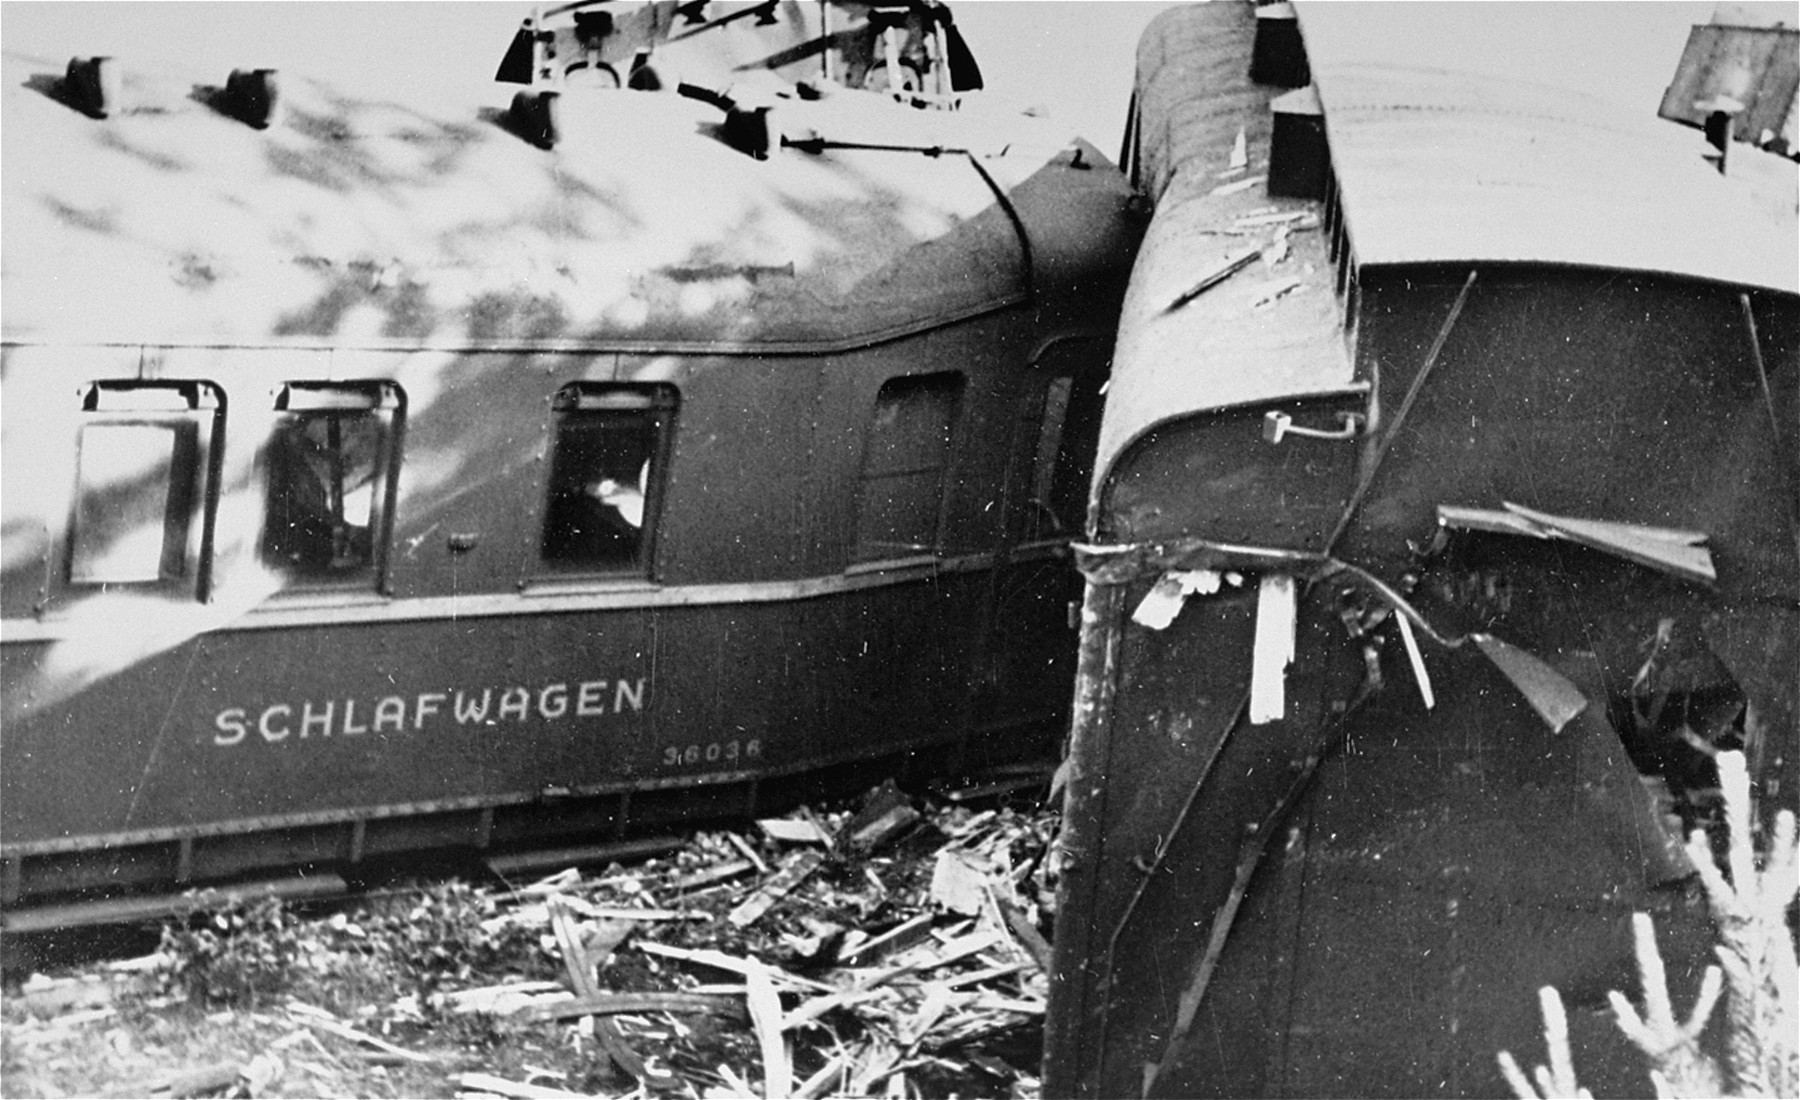 The sleeping car of a German train lies next to the tracks where it was derailed by the Polish resistance.